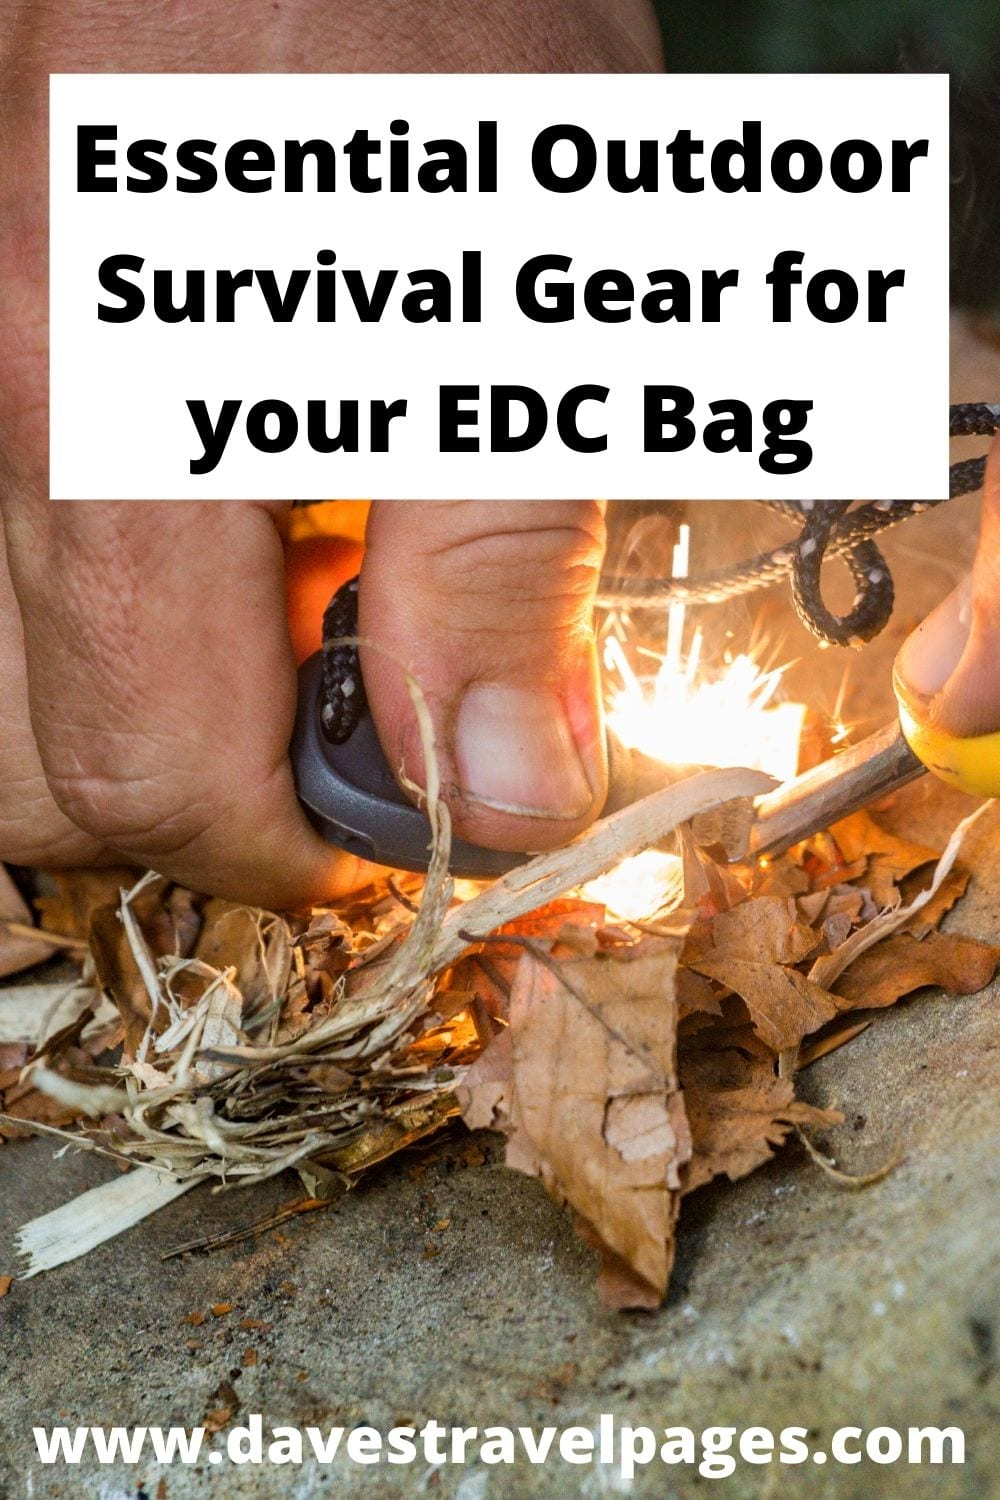 Essential survival gear for your EDC bag